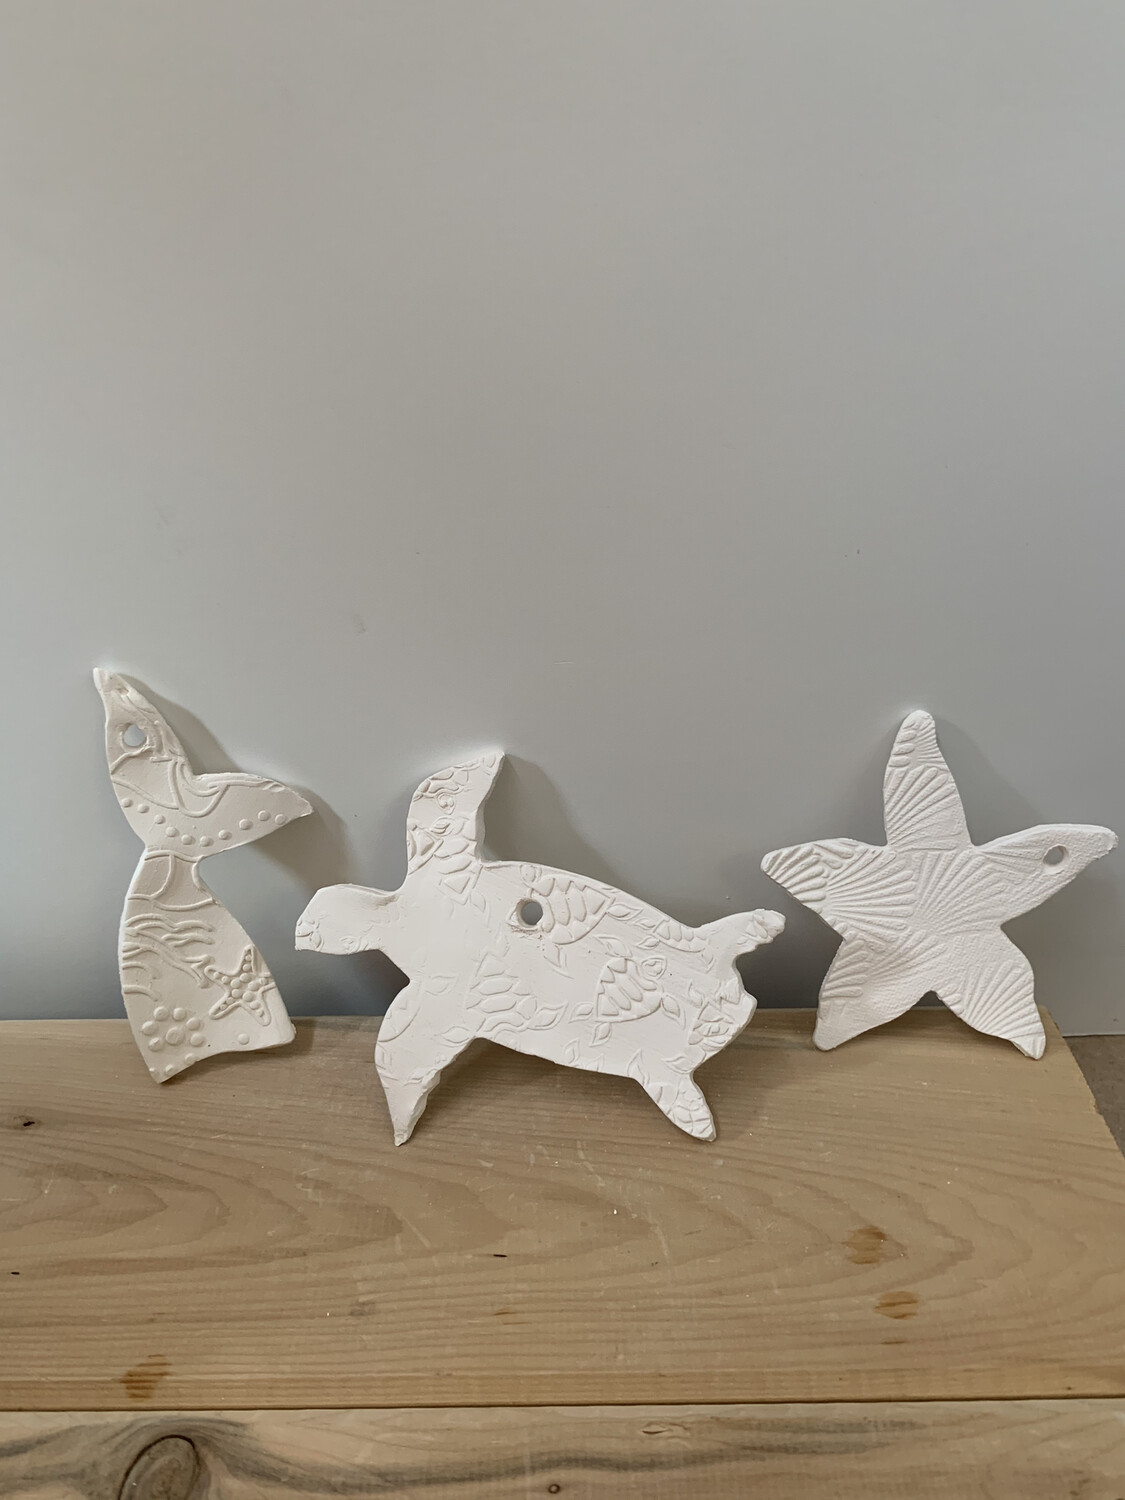 Paint Your Own Pottery - Ceramic   - Set of 3 Ocean Christmas Ornaments - Turtle, Starfish, Mermaid Tail